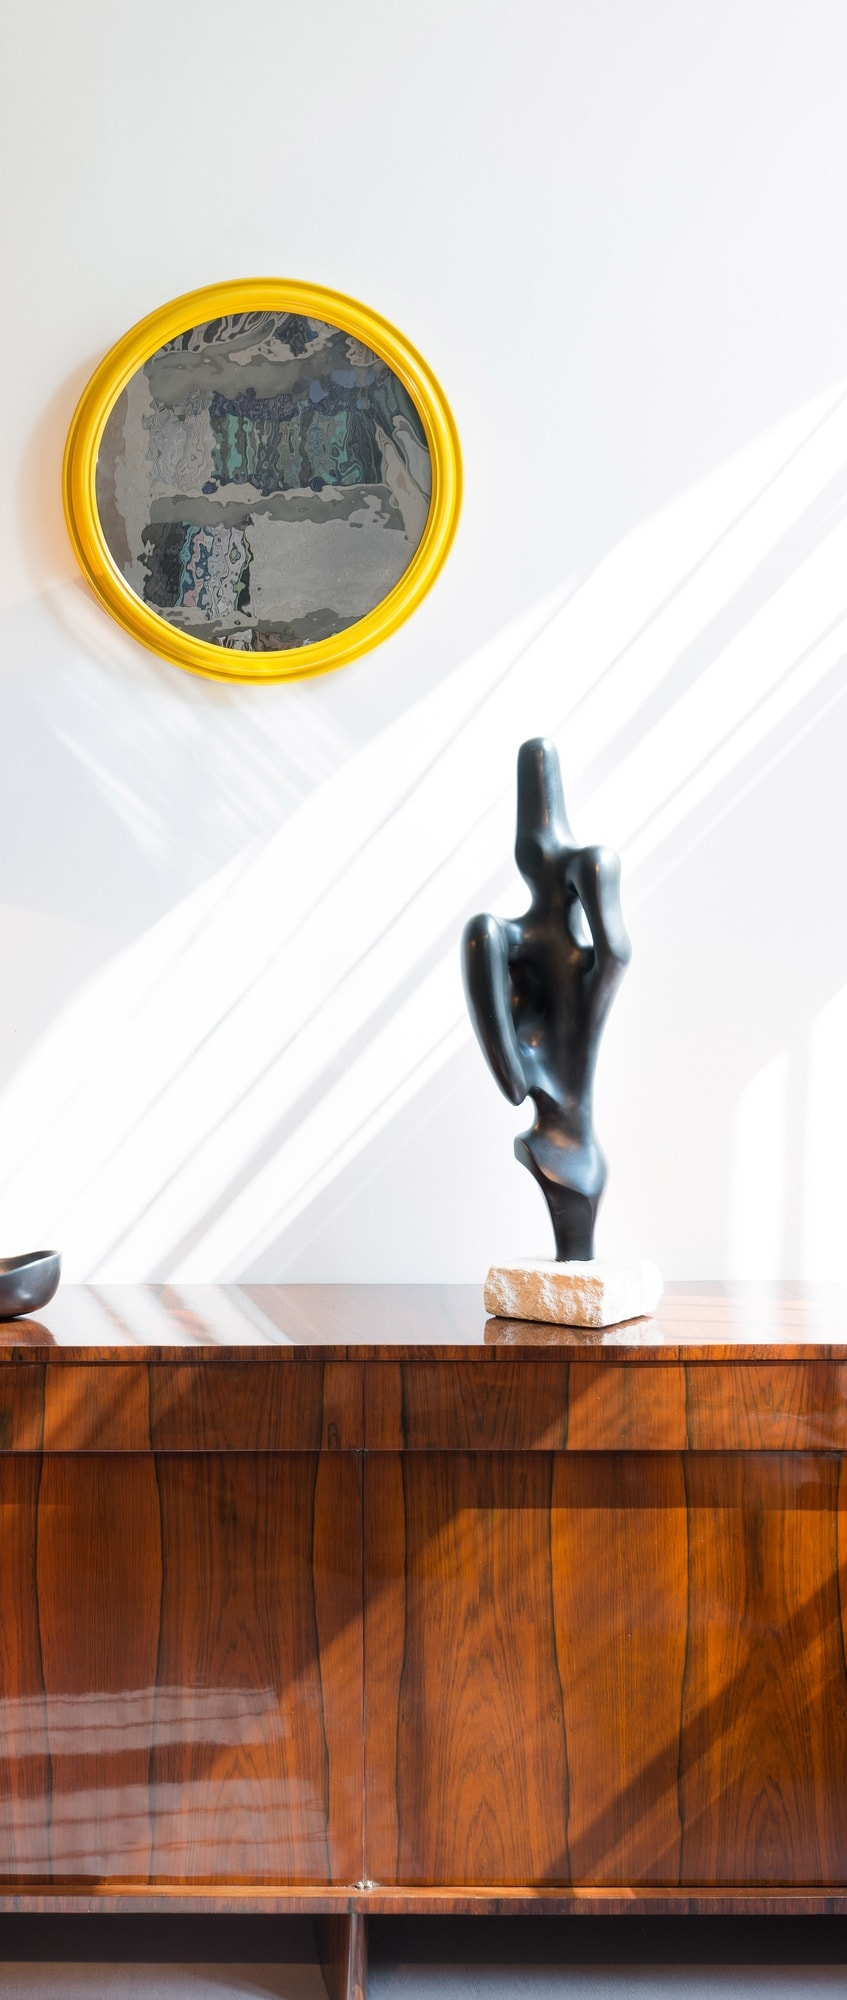 Georges Jouve, Exceptional and rare ceramic sculpture (sold), vue 01